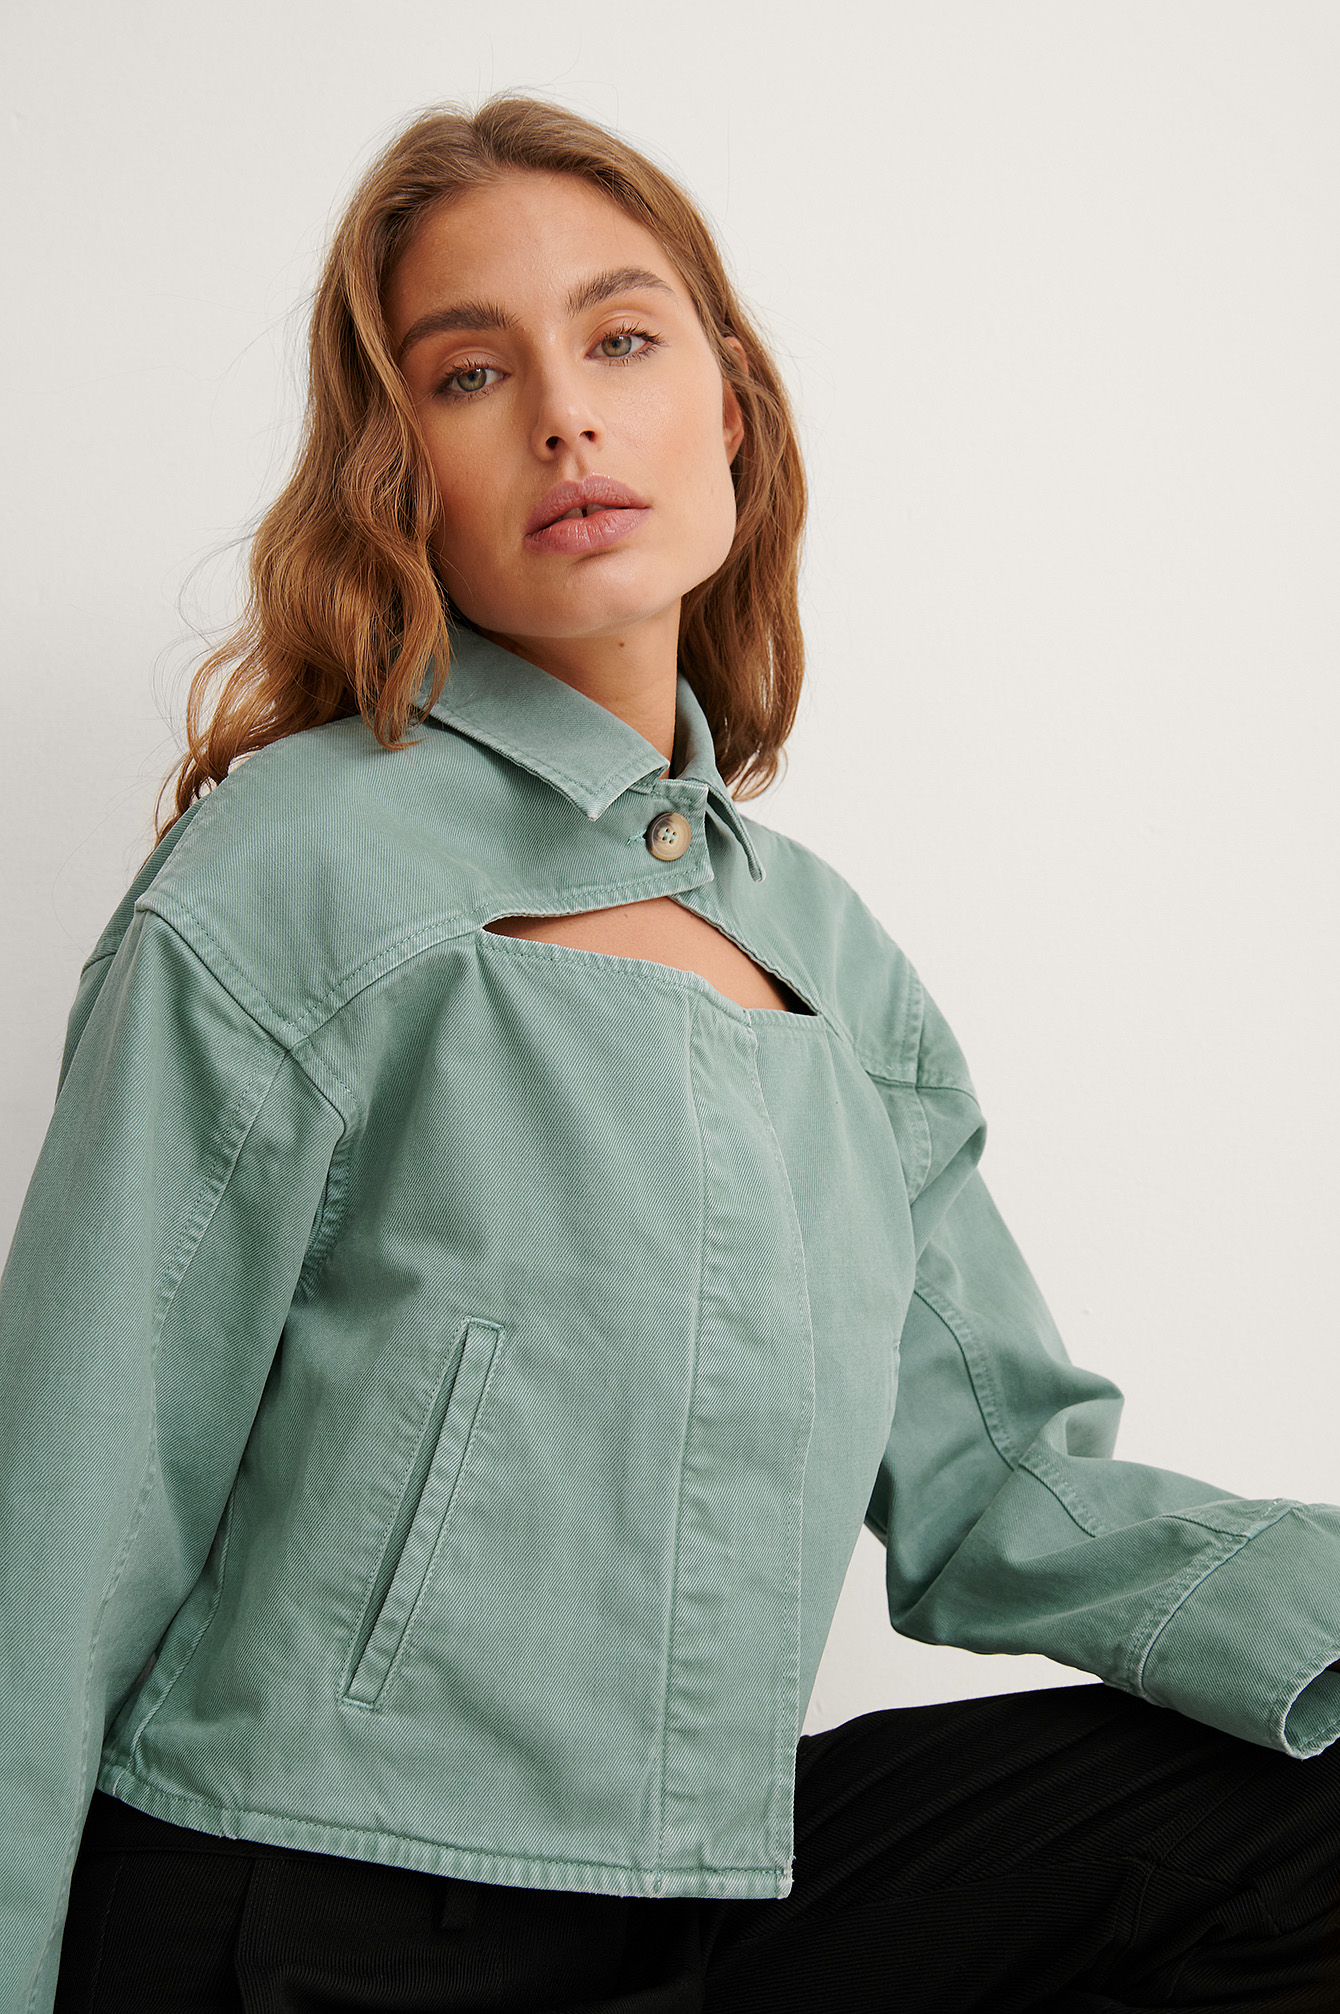 Light Turquoise Organic Cut Out Denim Jacket